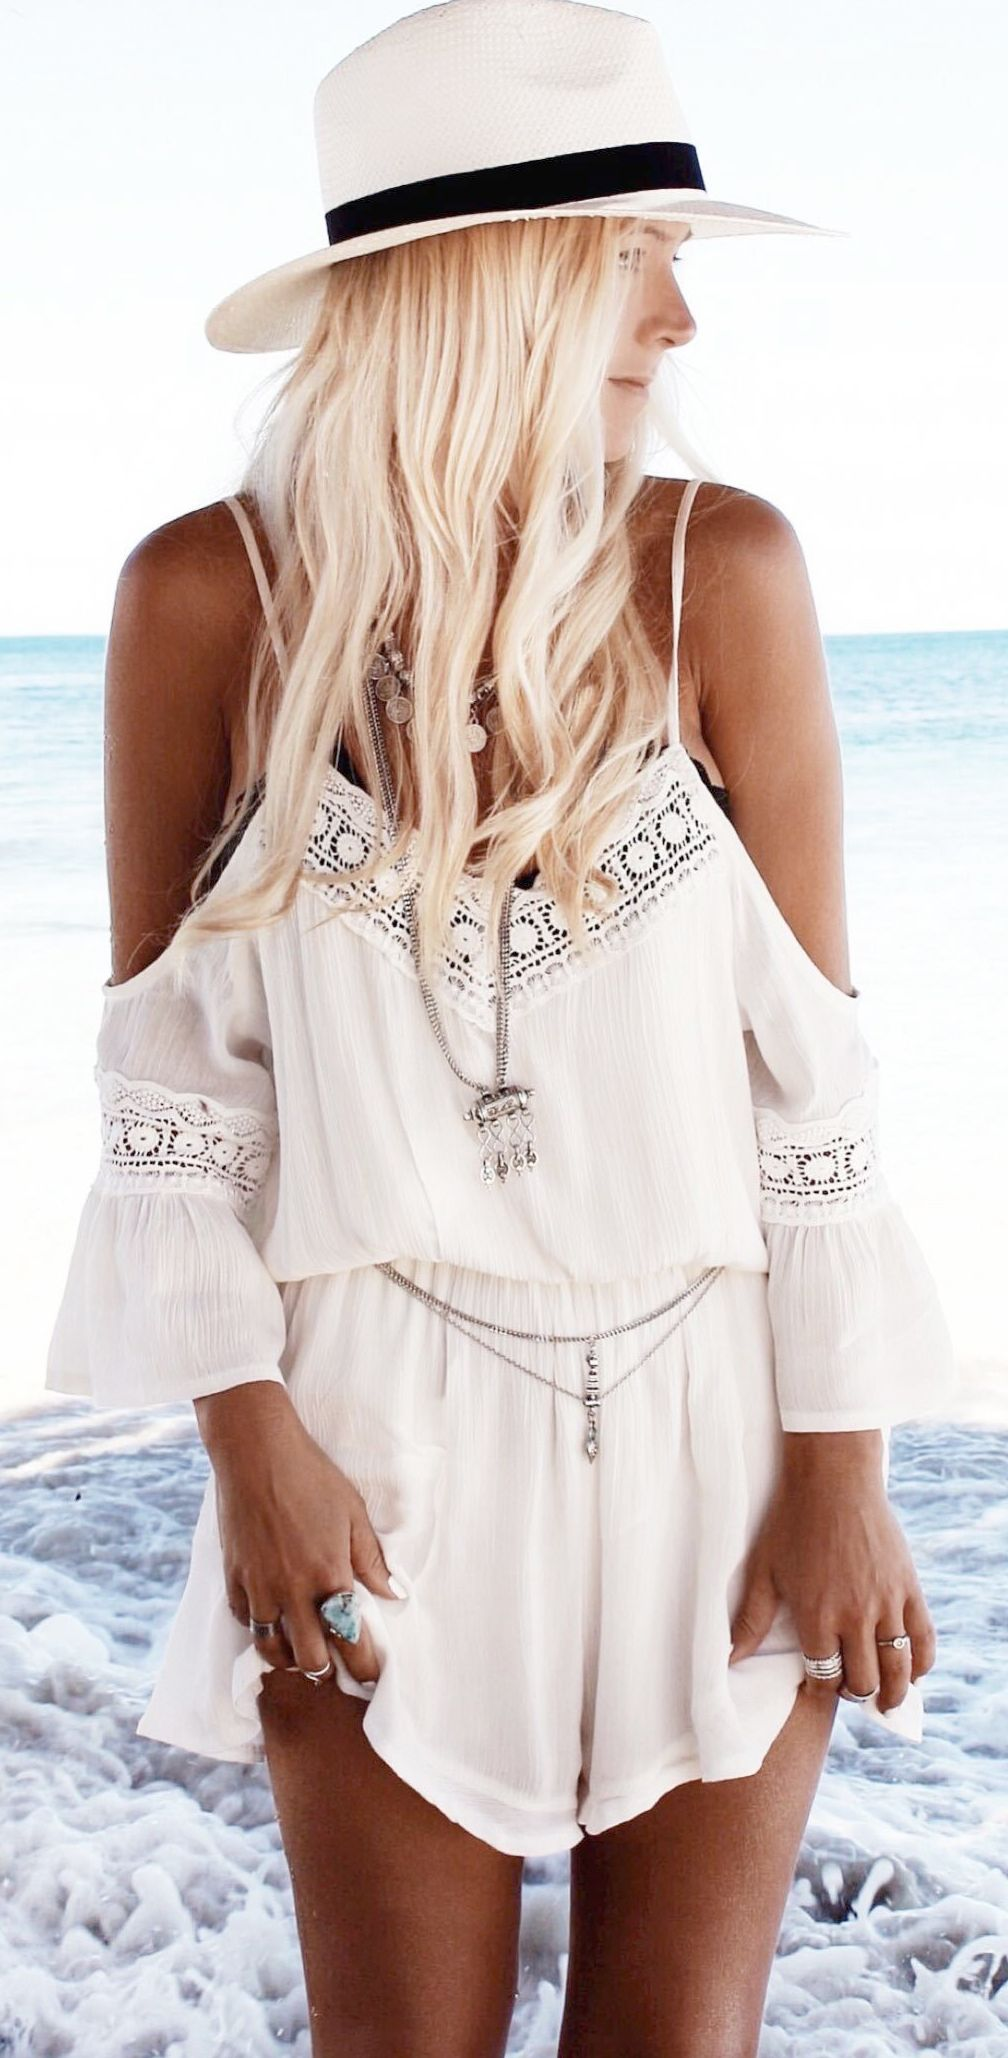 aacf6412cdf Gypsy boho chic hippie off shoulder lace romper. For the BEST Bohemian  fashion style ideas FOLLOW ...